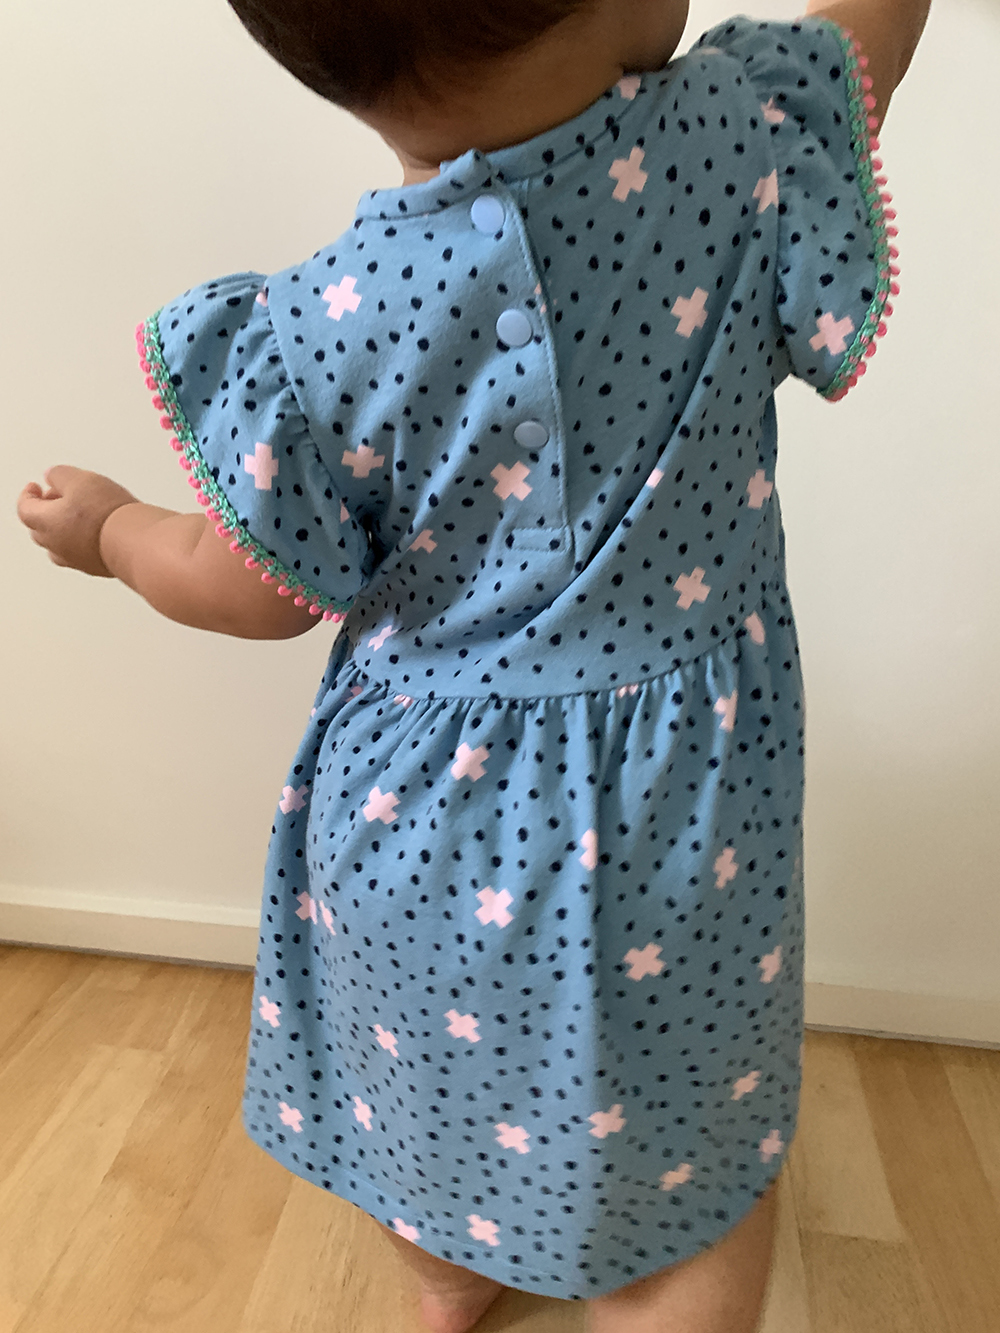 crossanddots-dress-kids-back.jpg